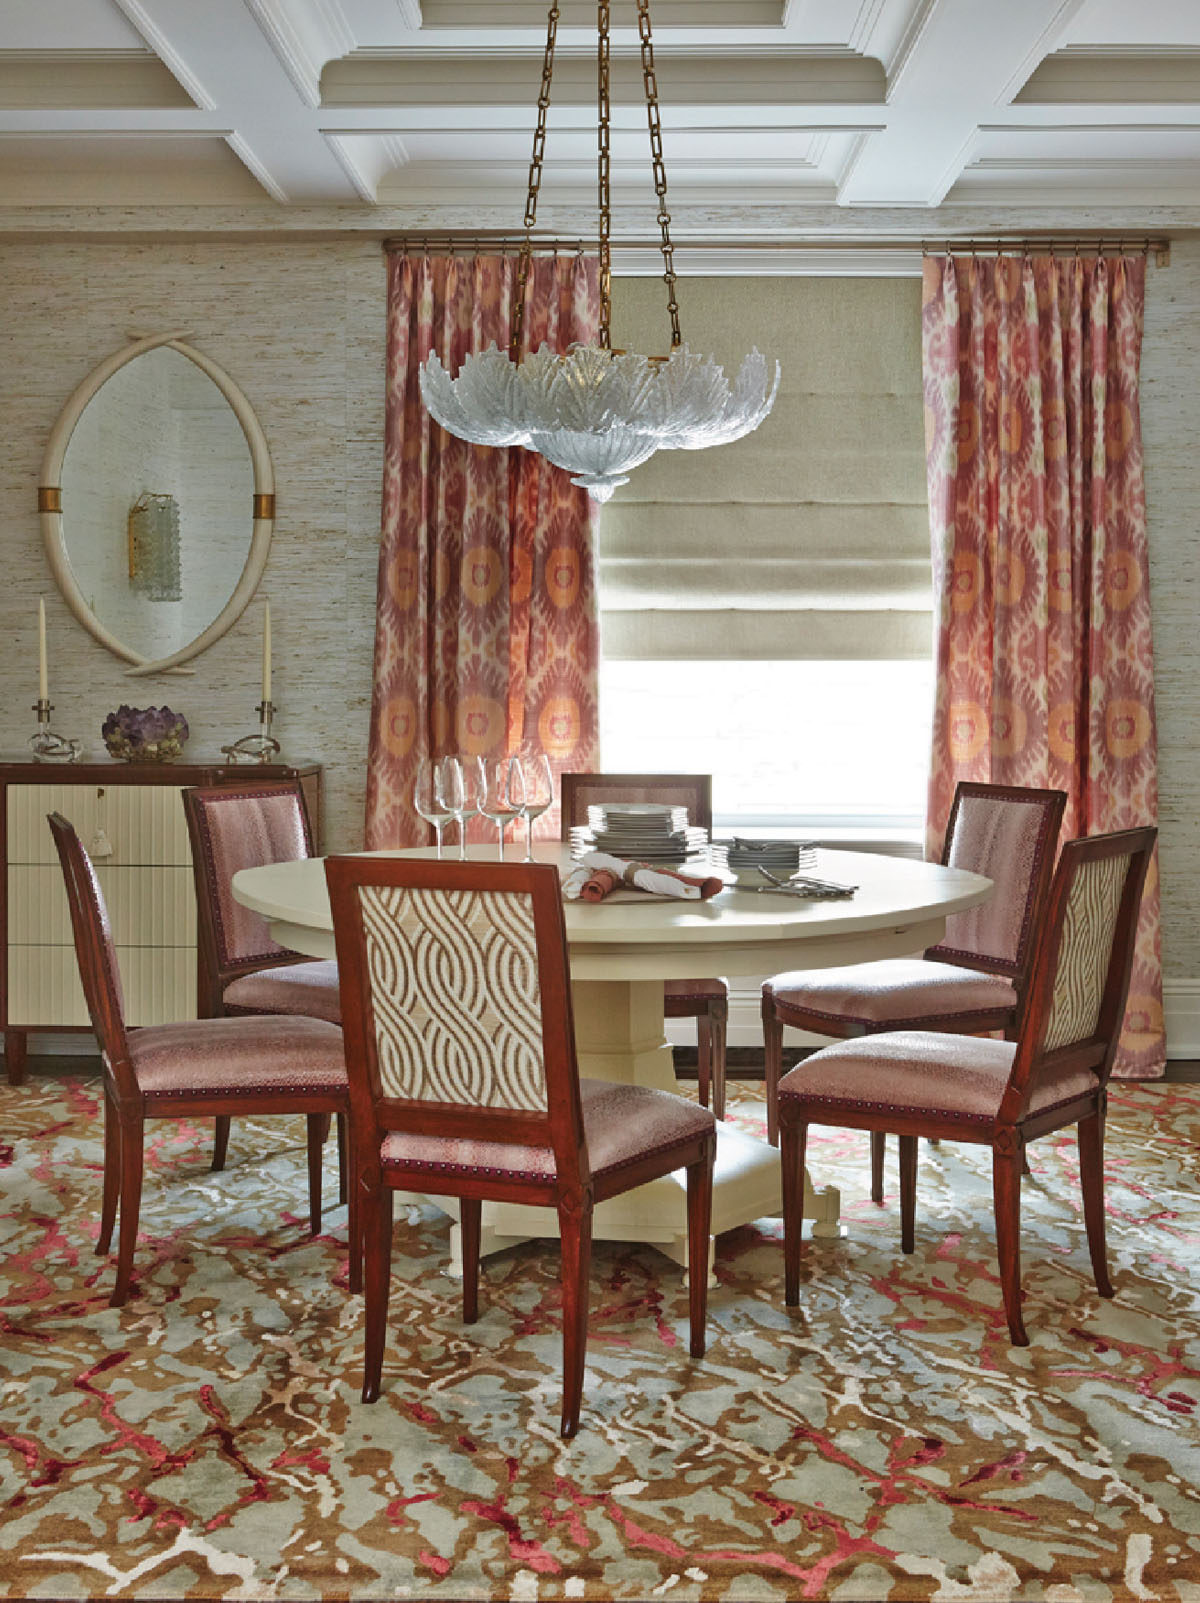 PRIVATE RESIDENCE-DINING ROOM     KERALA  HANDKNOTTED CARPET NEW YORK, NY